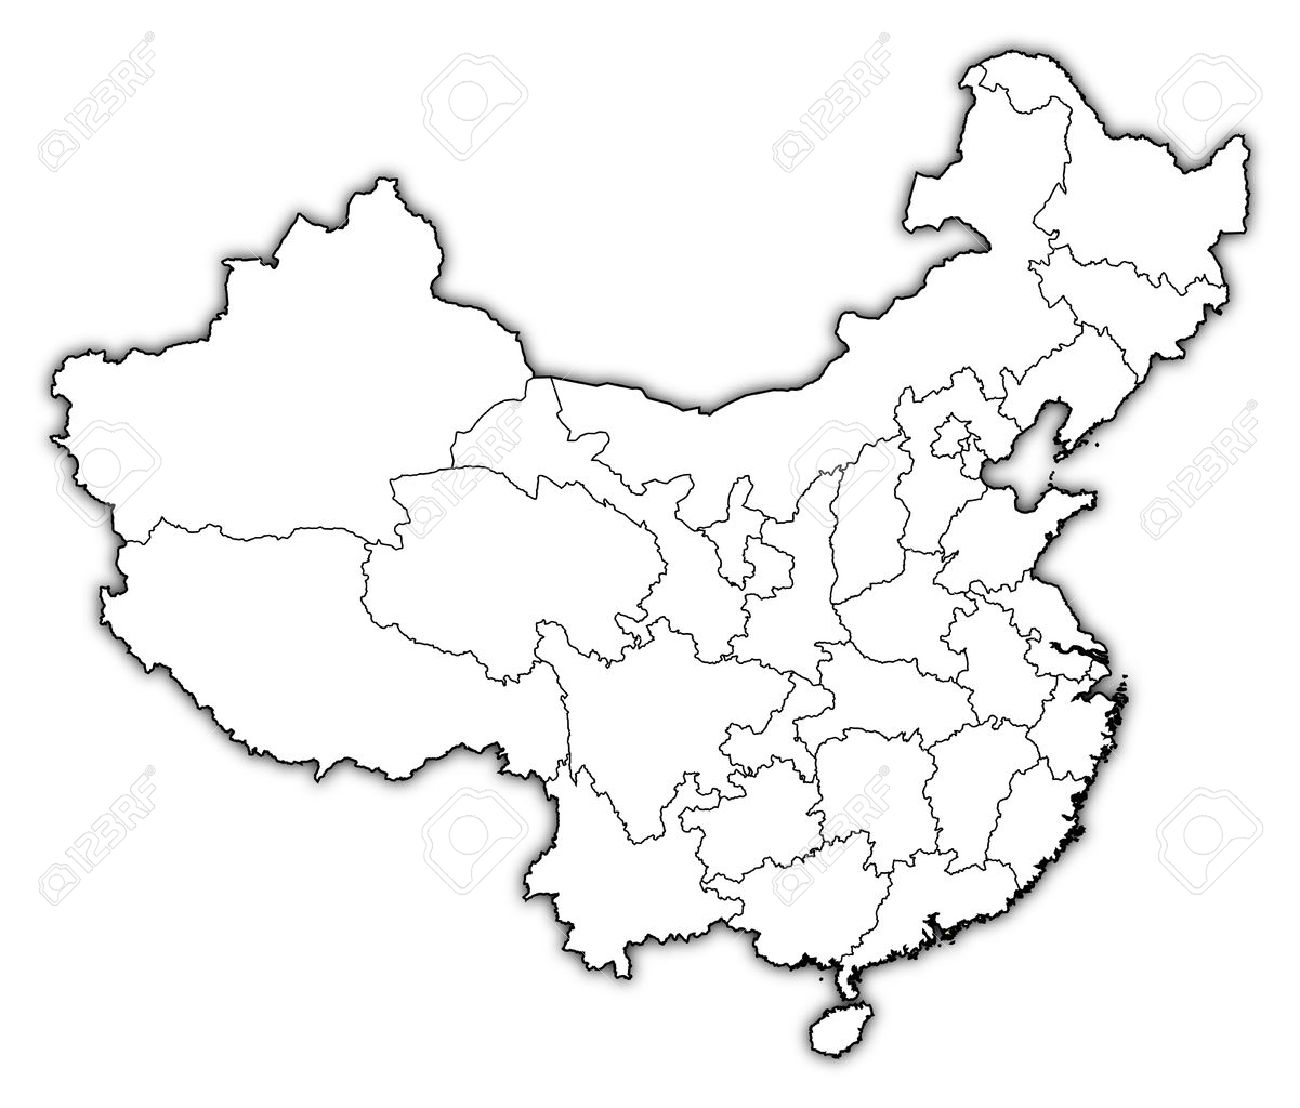 Political Map Of China With The Several Provinces Where Hong ...